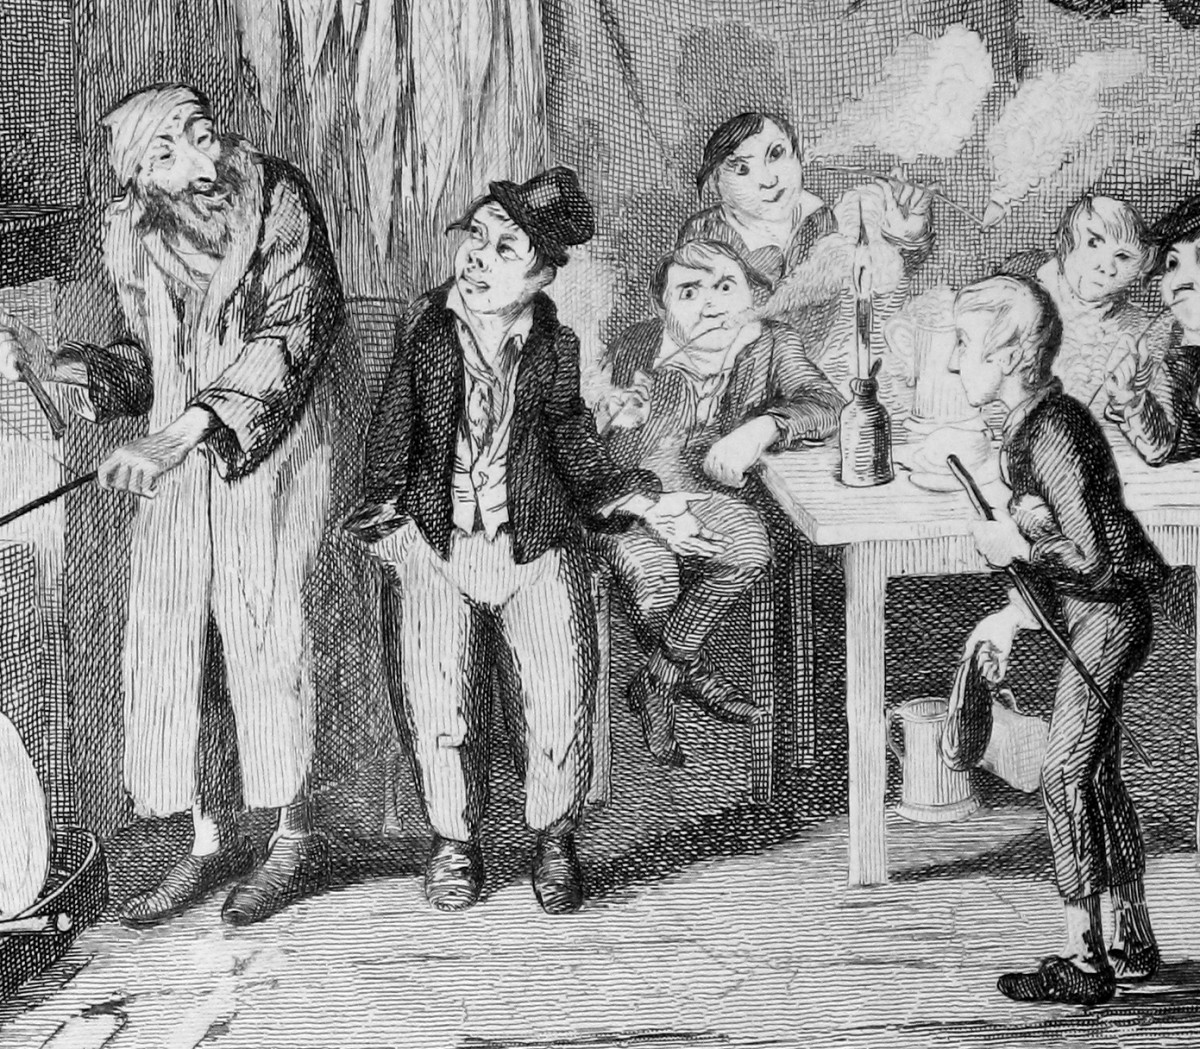 The Artful Dodger introduces Oliver to Fagin in this detail from an original George Cruikshank engraving for Charles Dickens' Oliver Twist, ca. 1839.